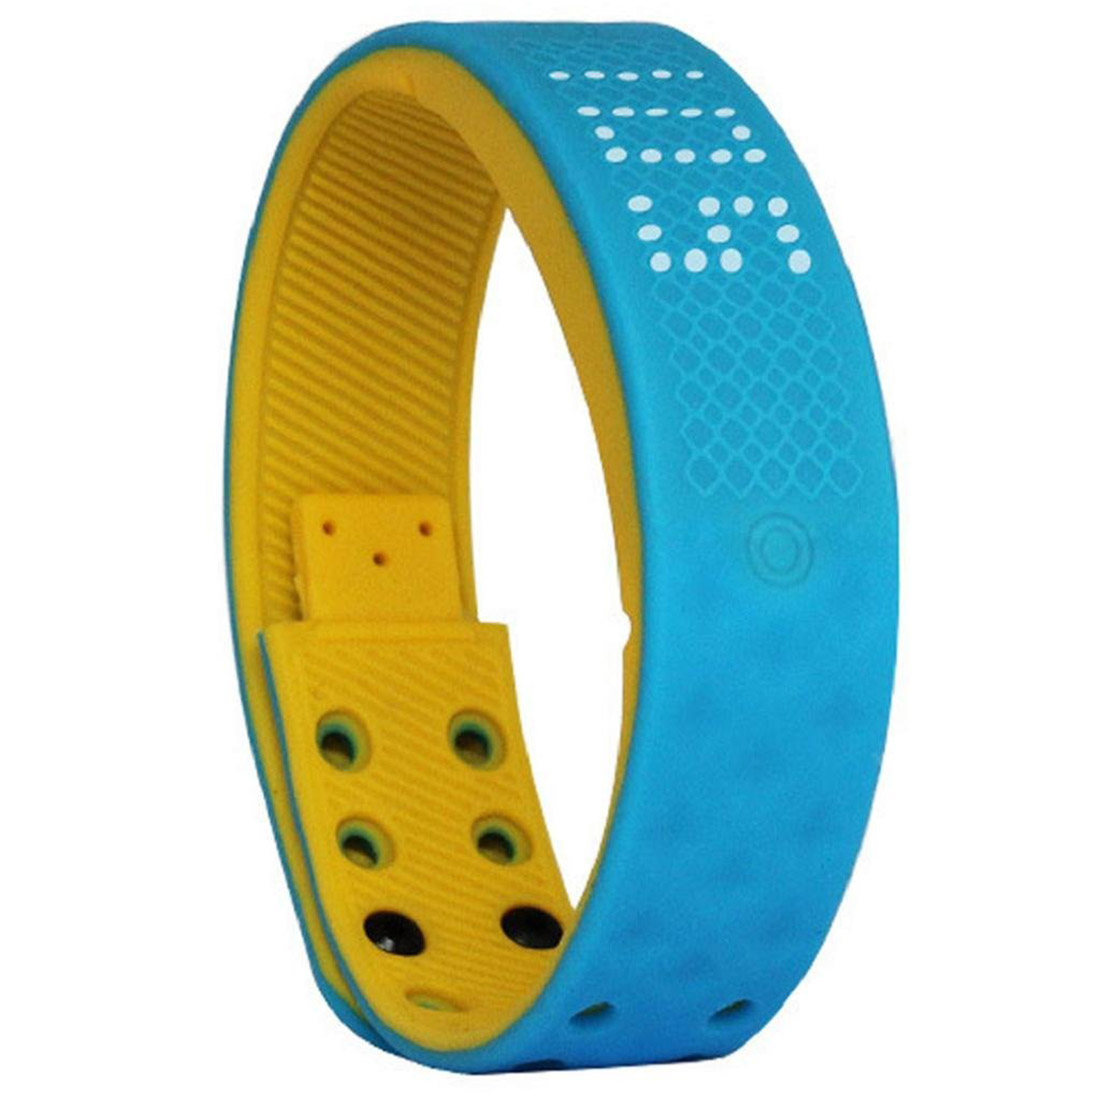 TW2 Smart Watch Bluetooth Smart Bracelet Monitor for iOS Android H